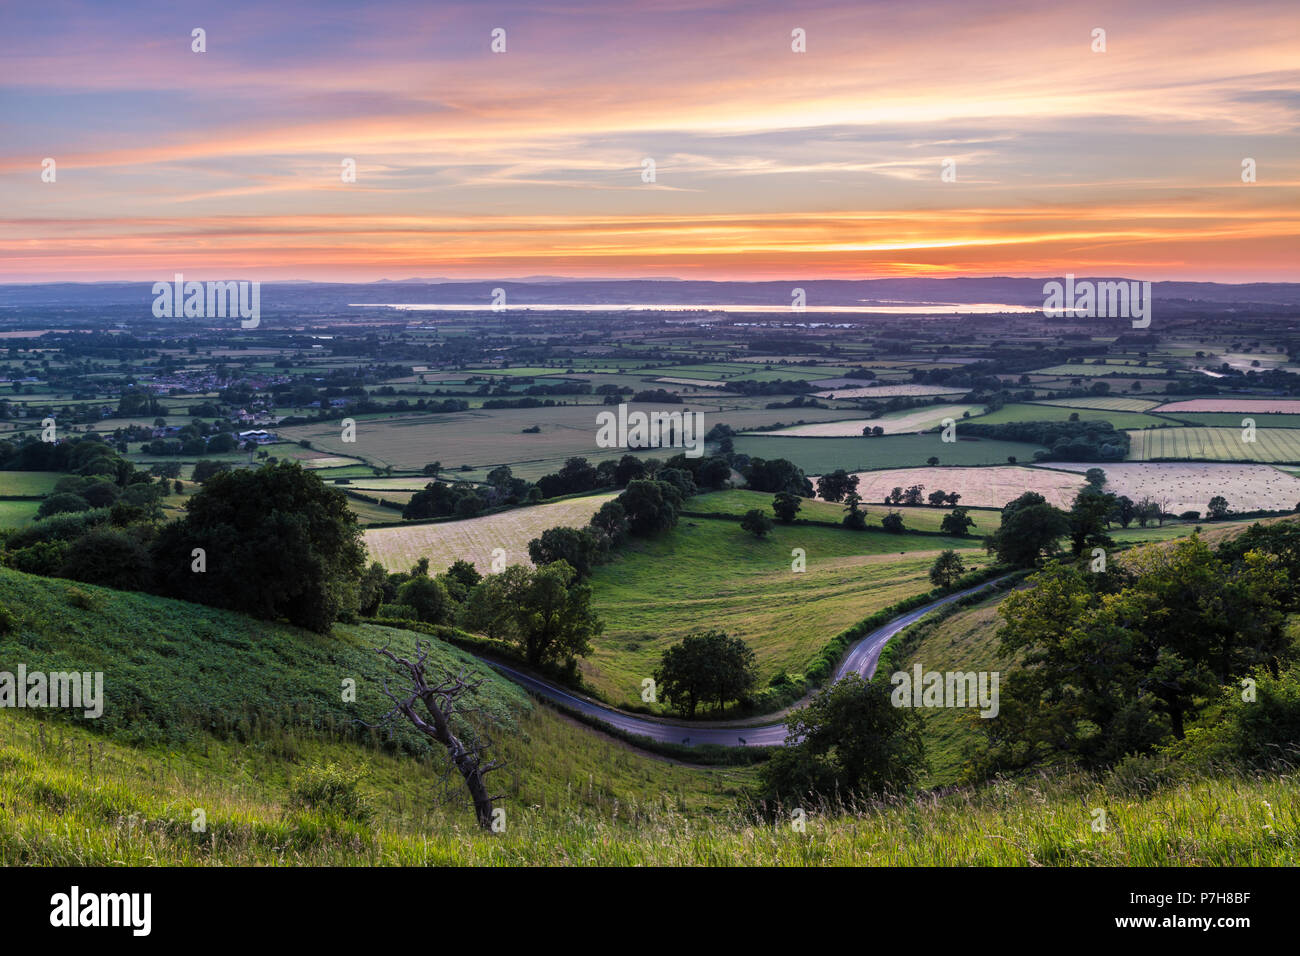 Sunset view across the Severn valley from Coaley Peak - Stock Image